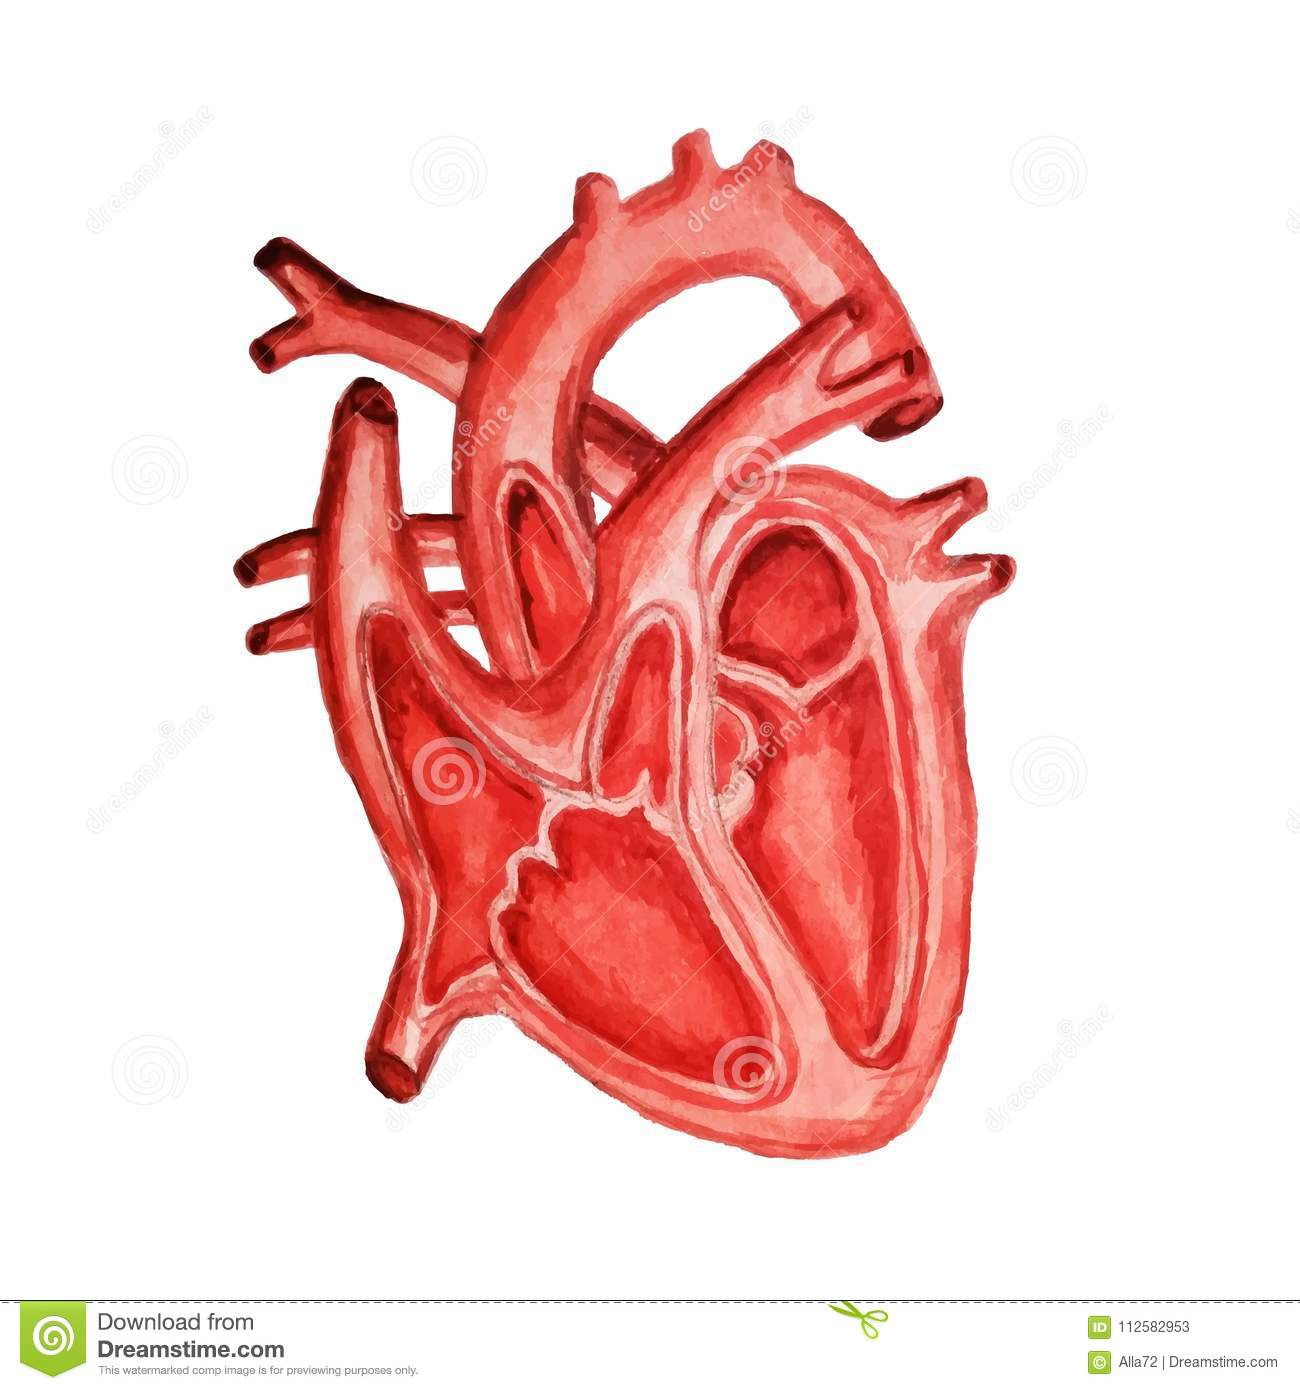 Part Of The Human Heart. Anatomy. Diastole And Systole. Watercolor ...